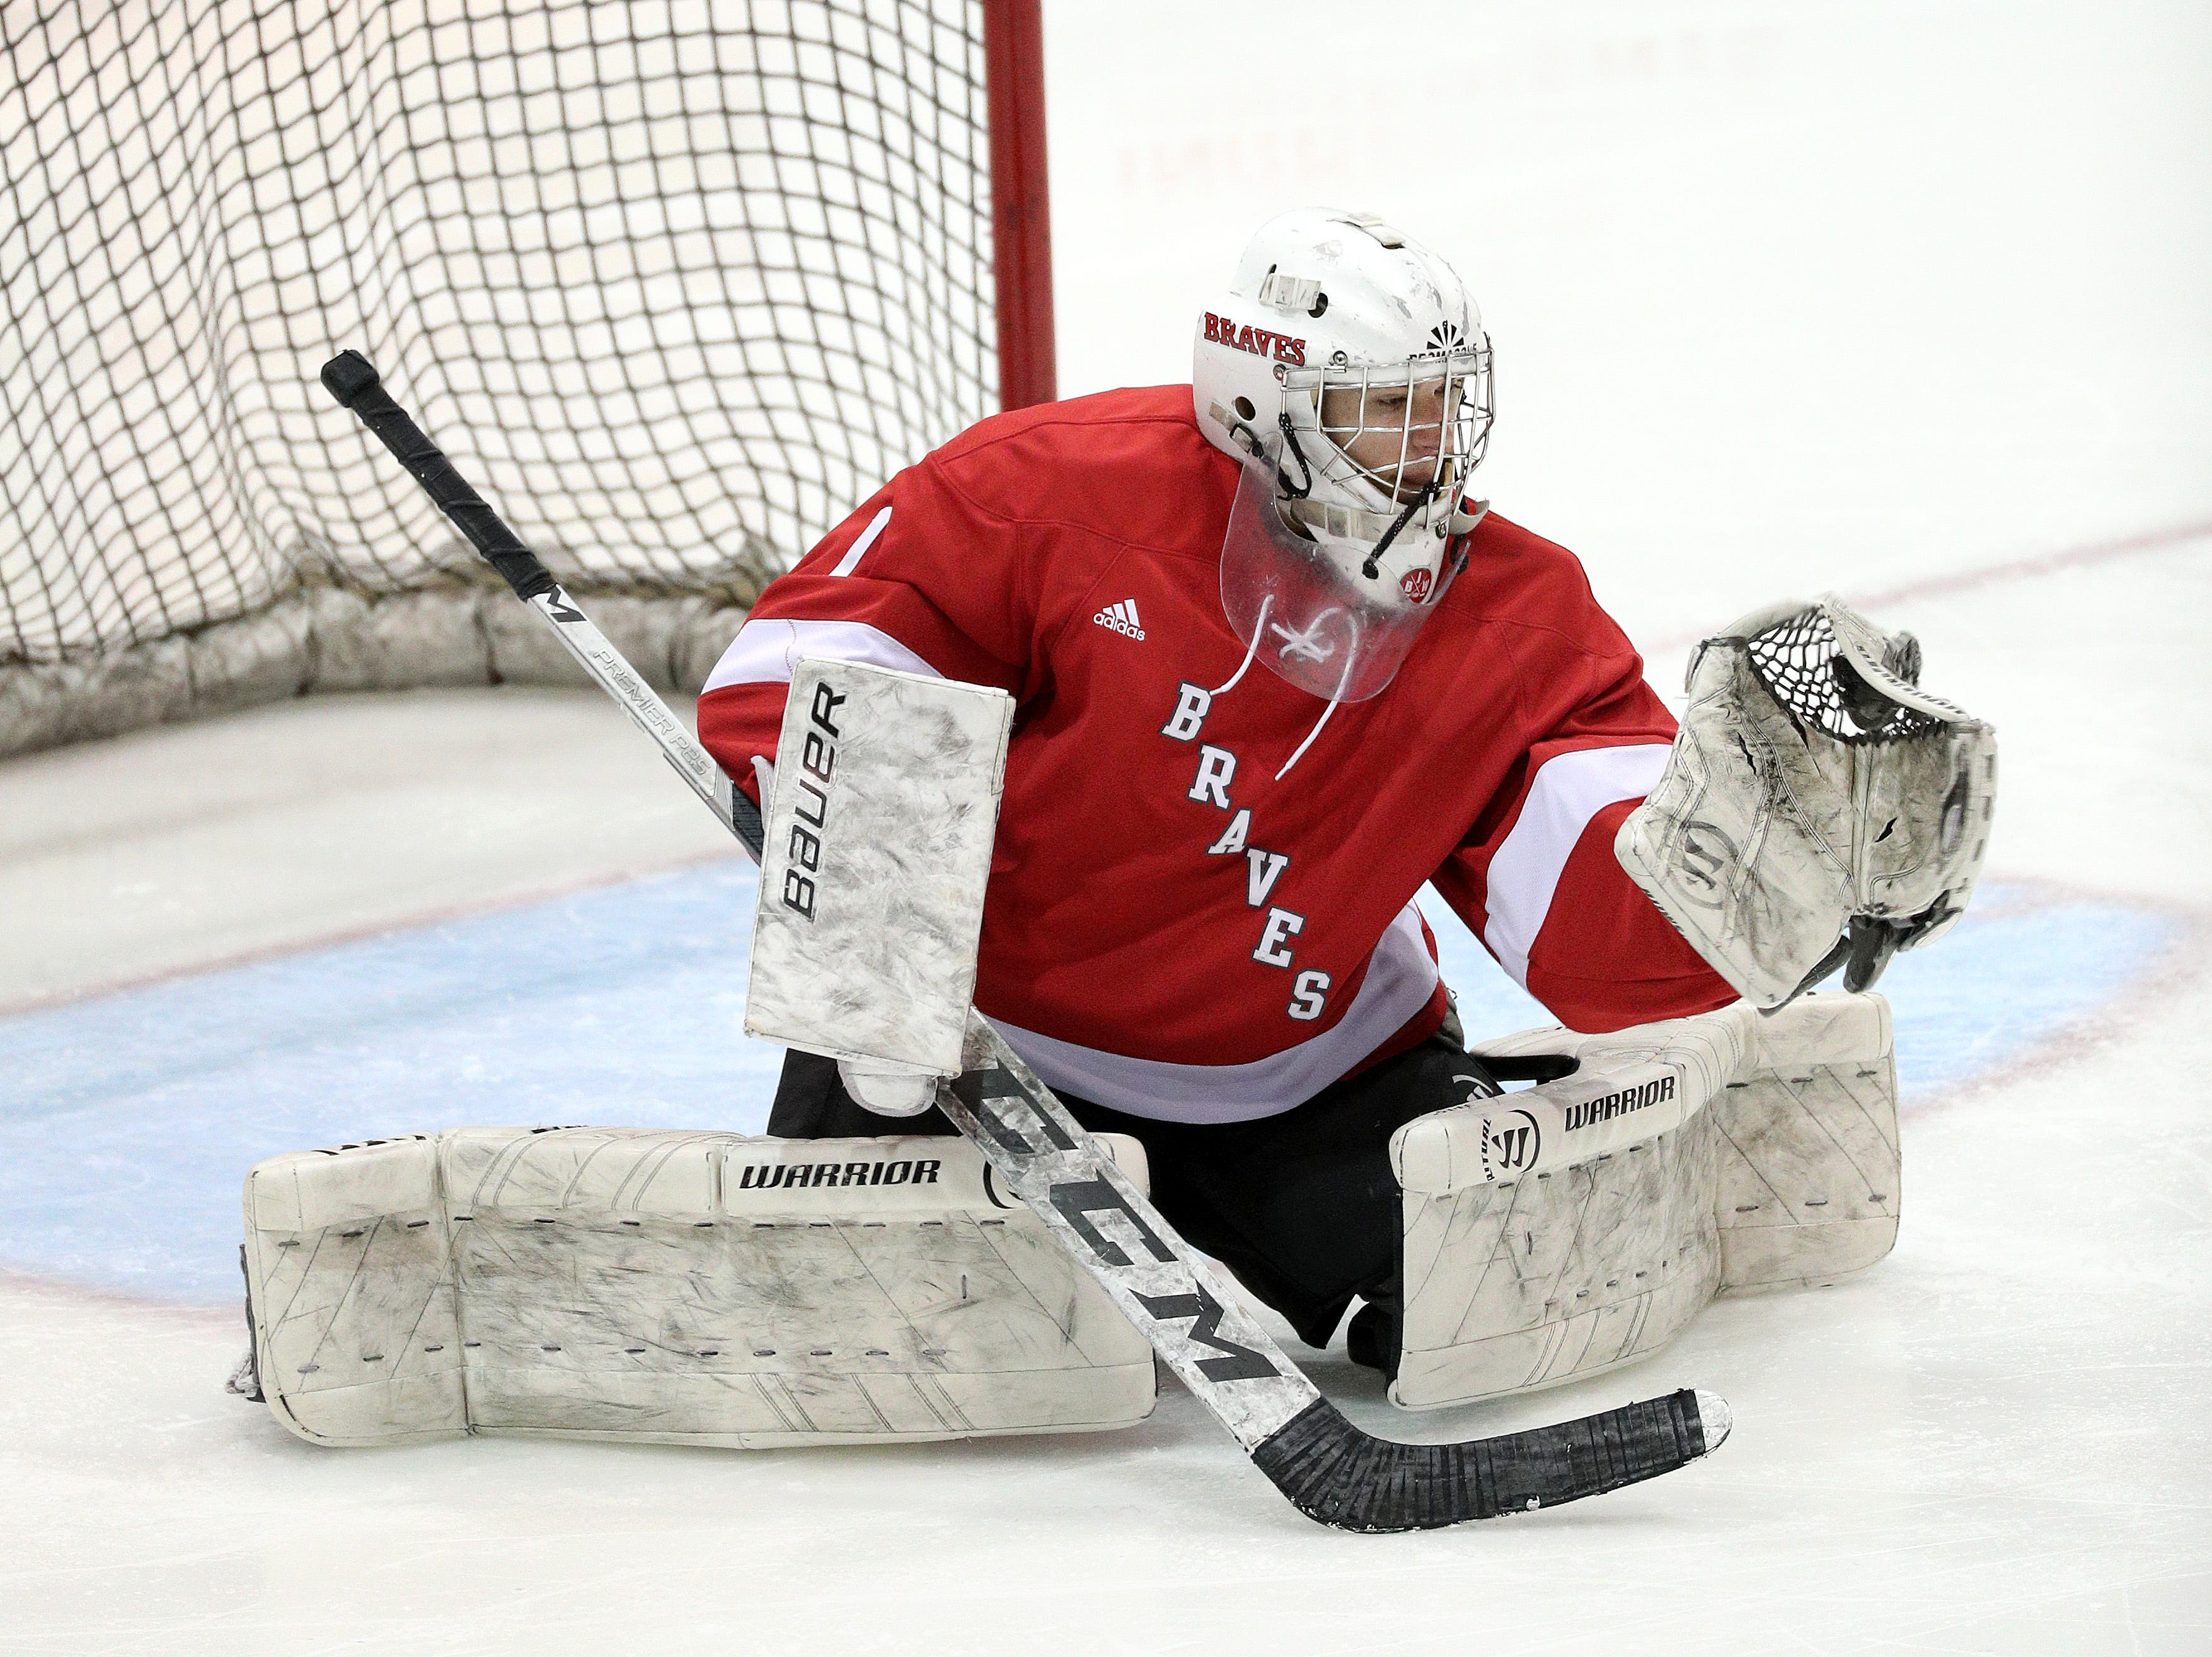 Canandaigua goalie Cade Chesler makes a glove save on this shot against Spencerport.